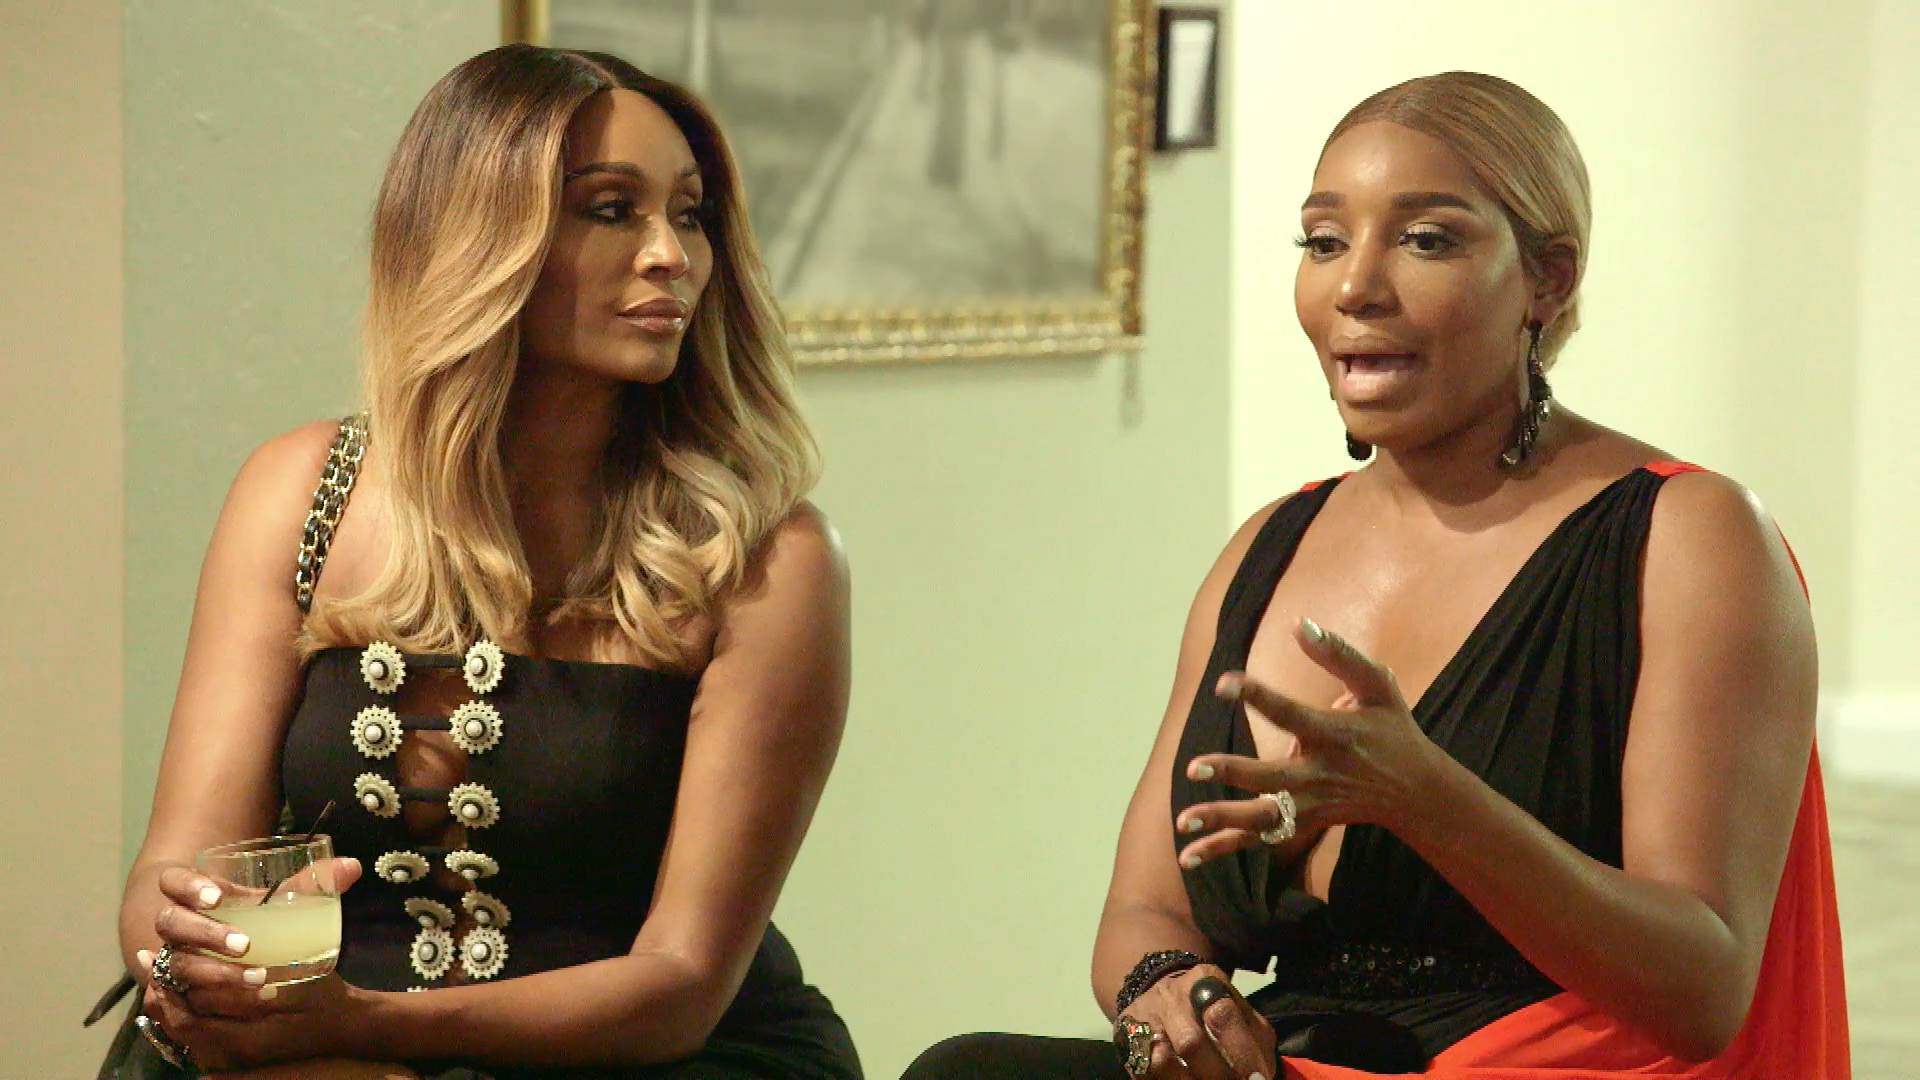 Some Of NeNe Leakes' Fans Call Her A Bully Who Needs Soul Cleansing